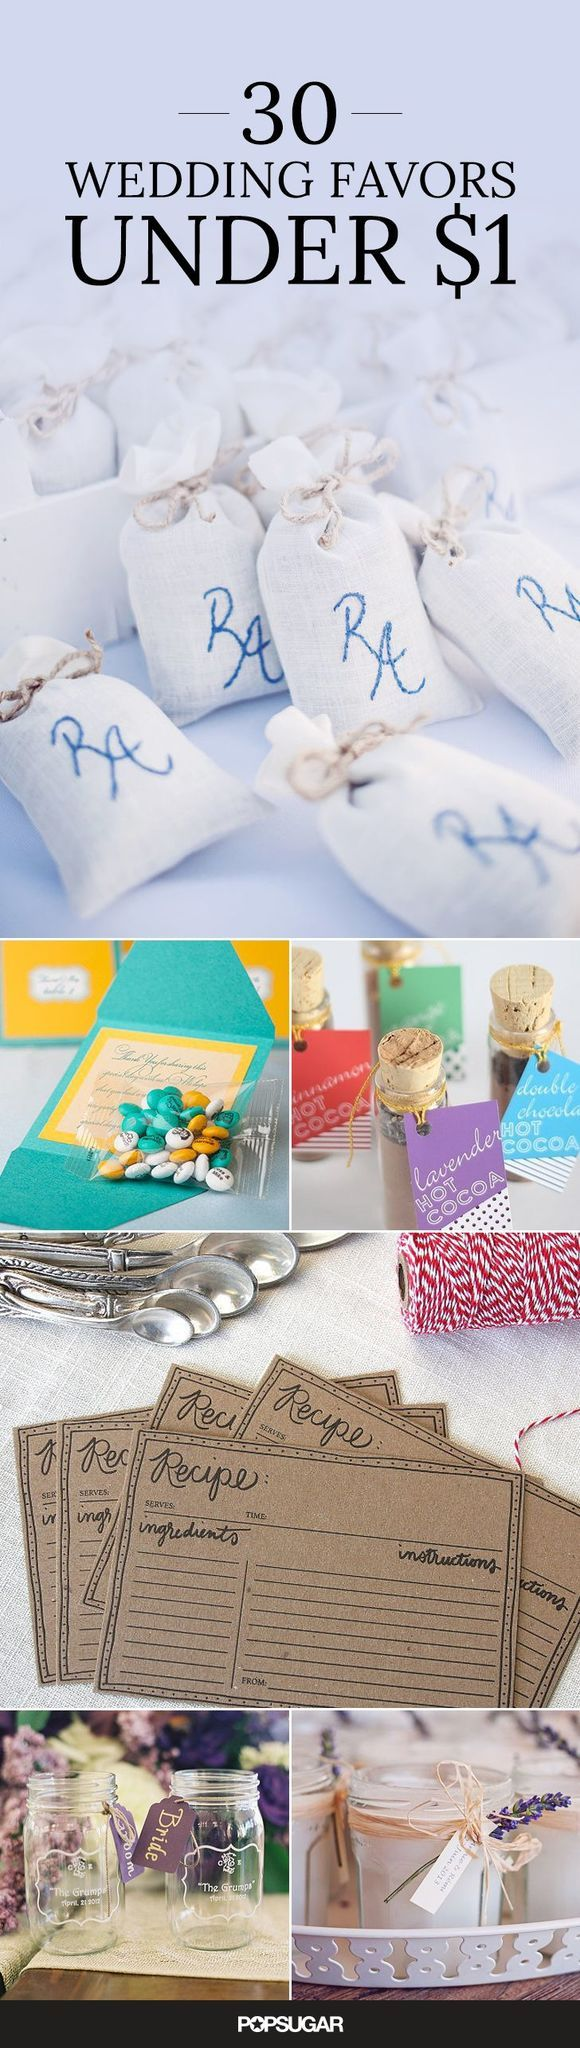 Hello inexpensive wedding favors! #Wedding #Bride #Groom and call (310) 882-5039 if you need a wedding officiant https://OfficiantGuy.com